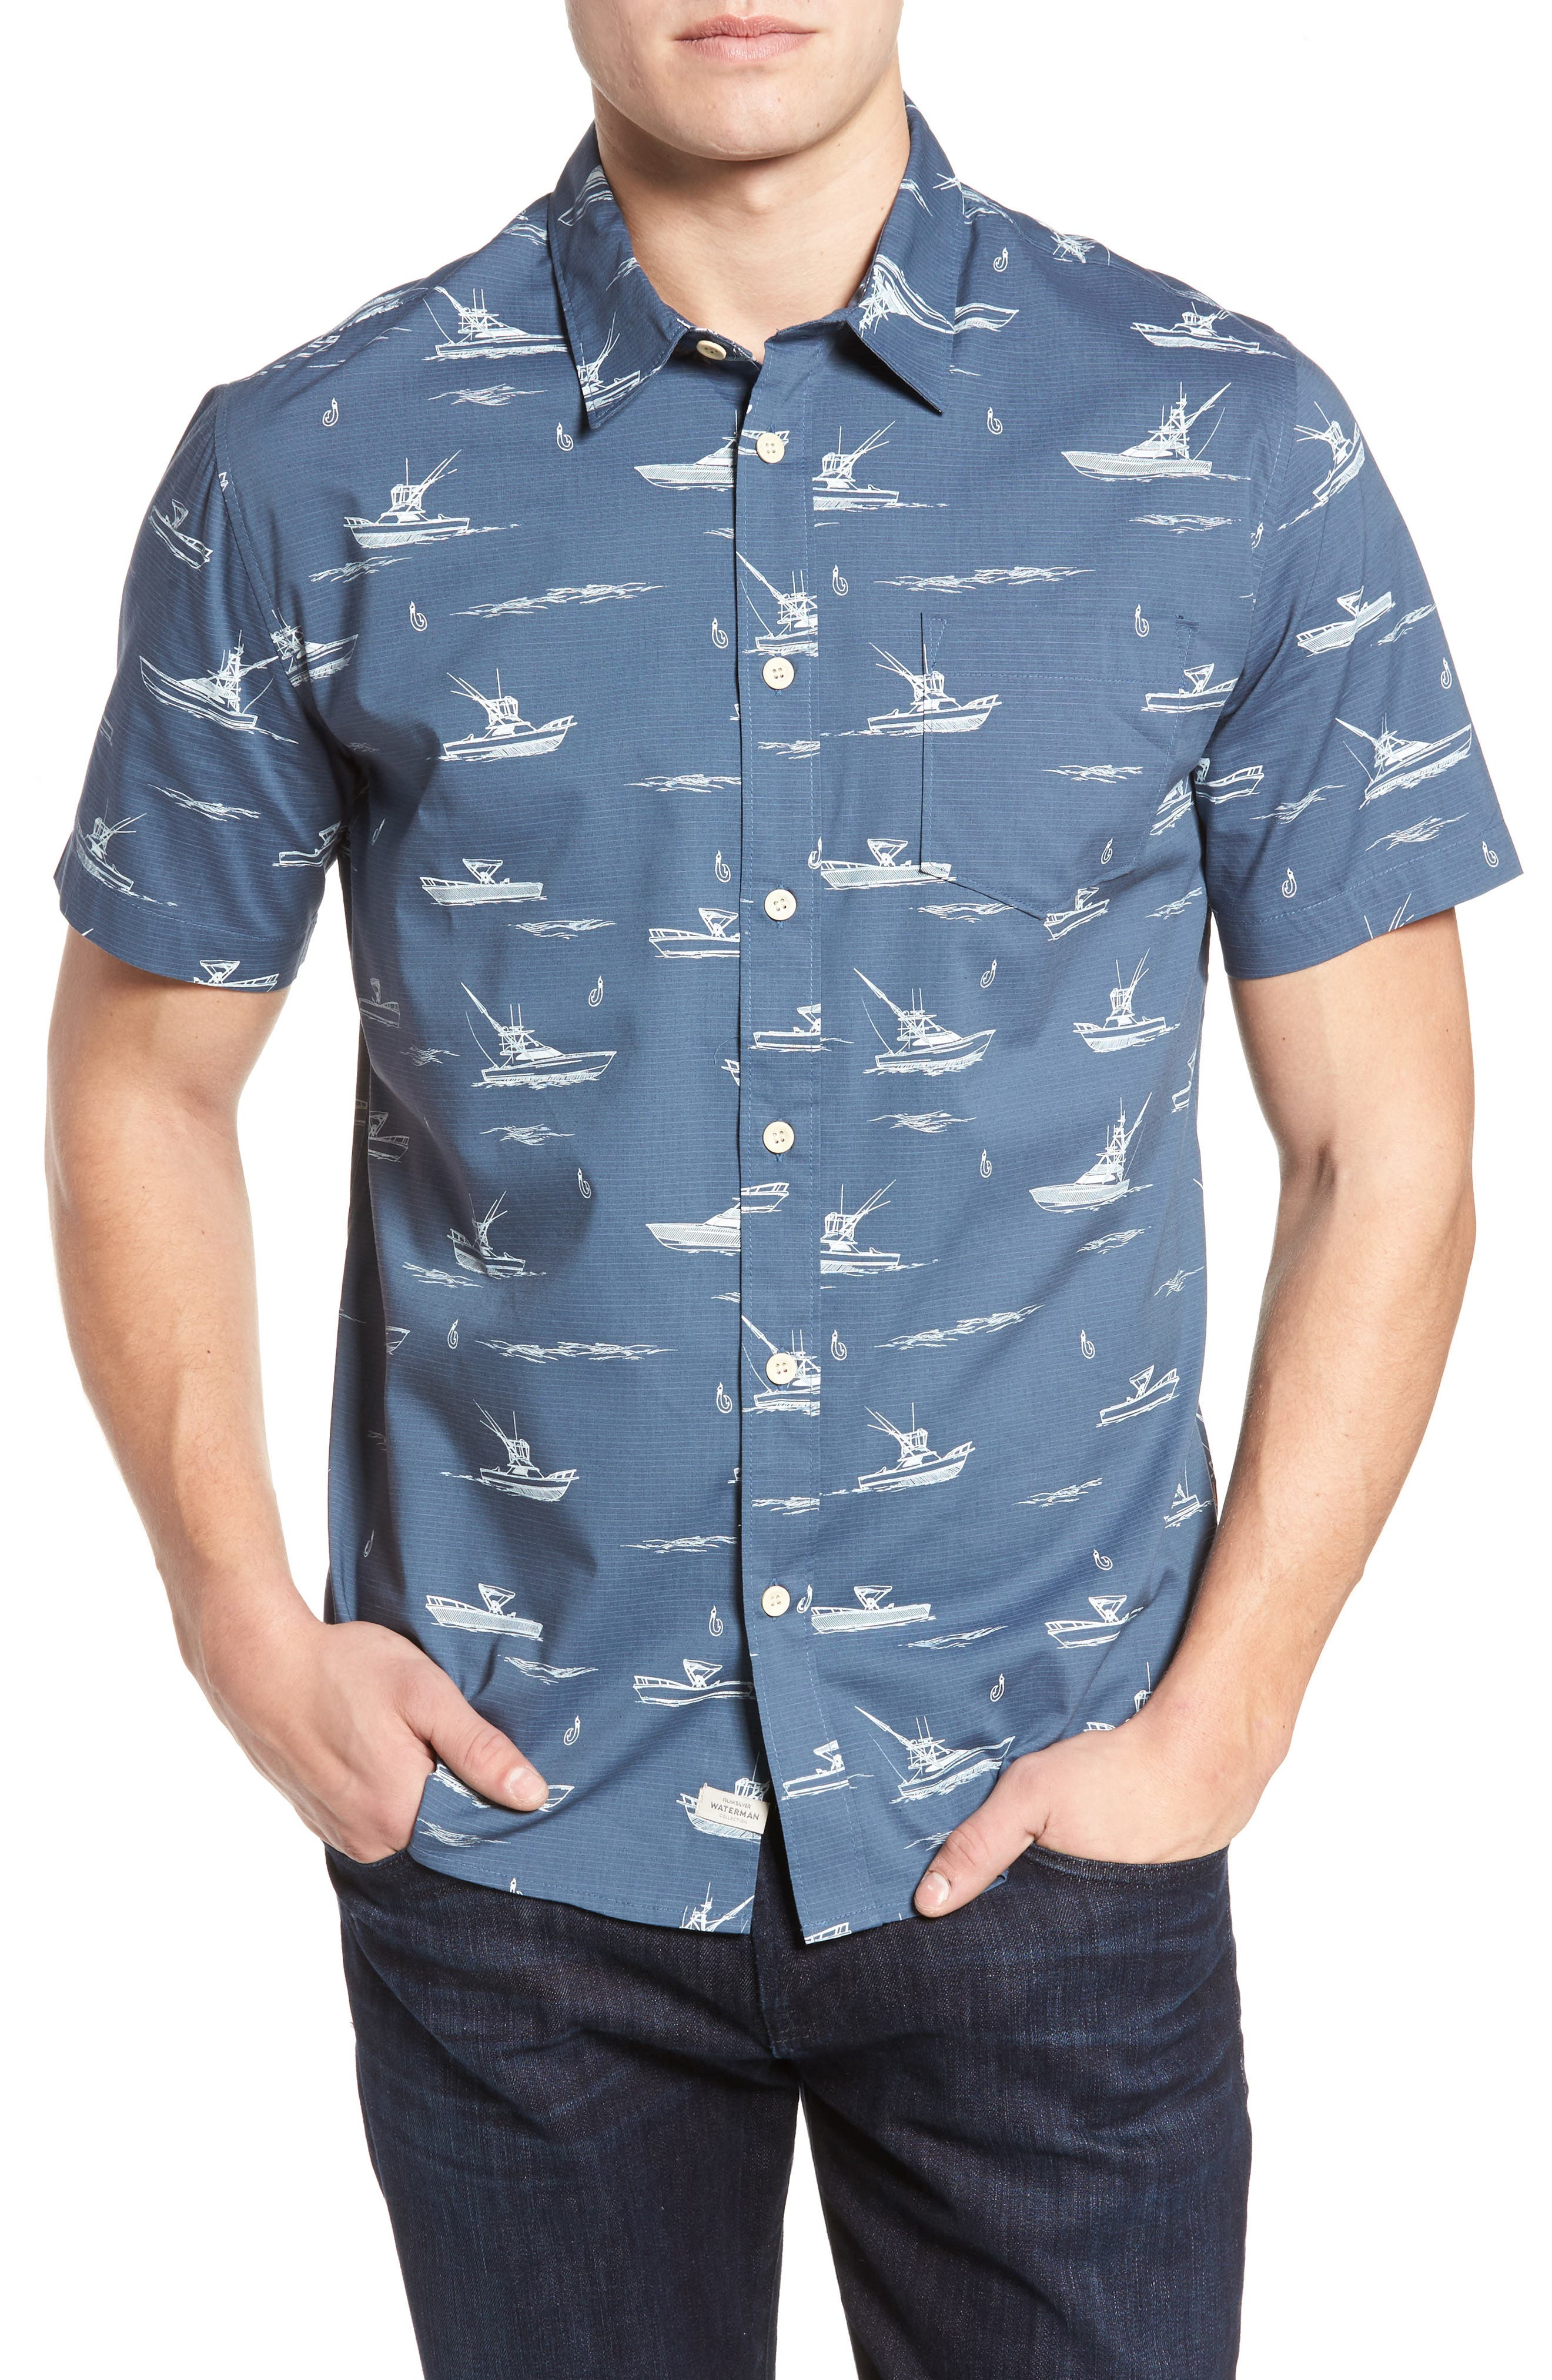 Quiksilver Waterman Collection Fishboats Sport Shirt